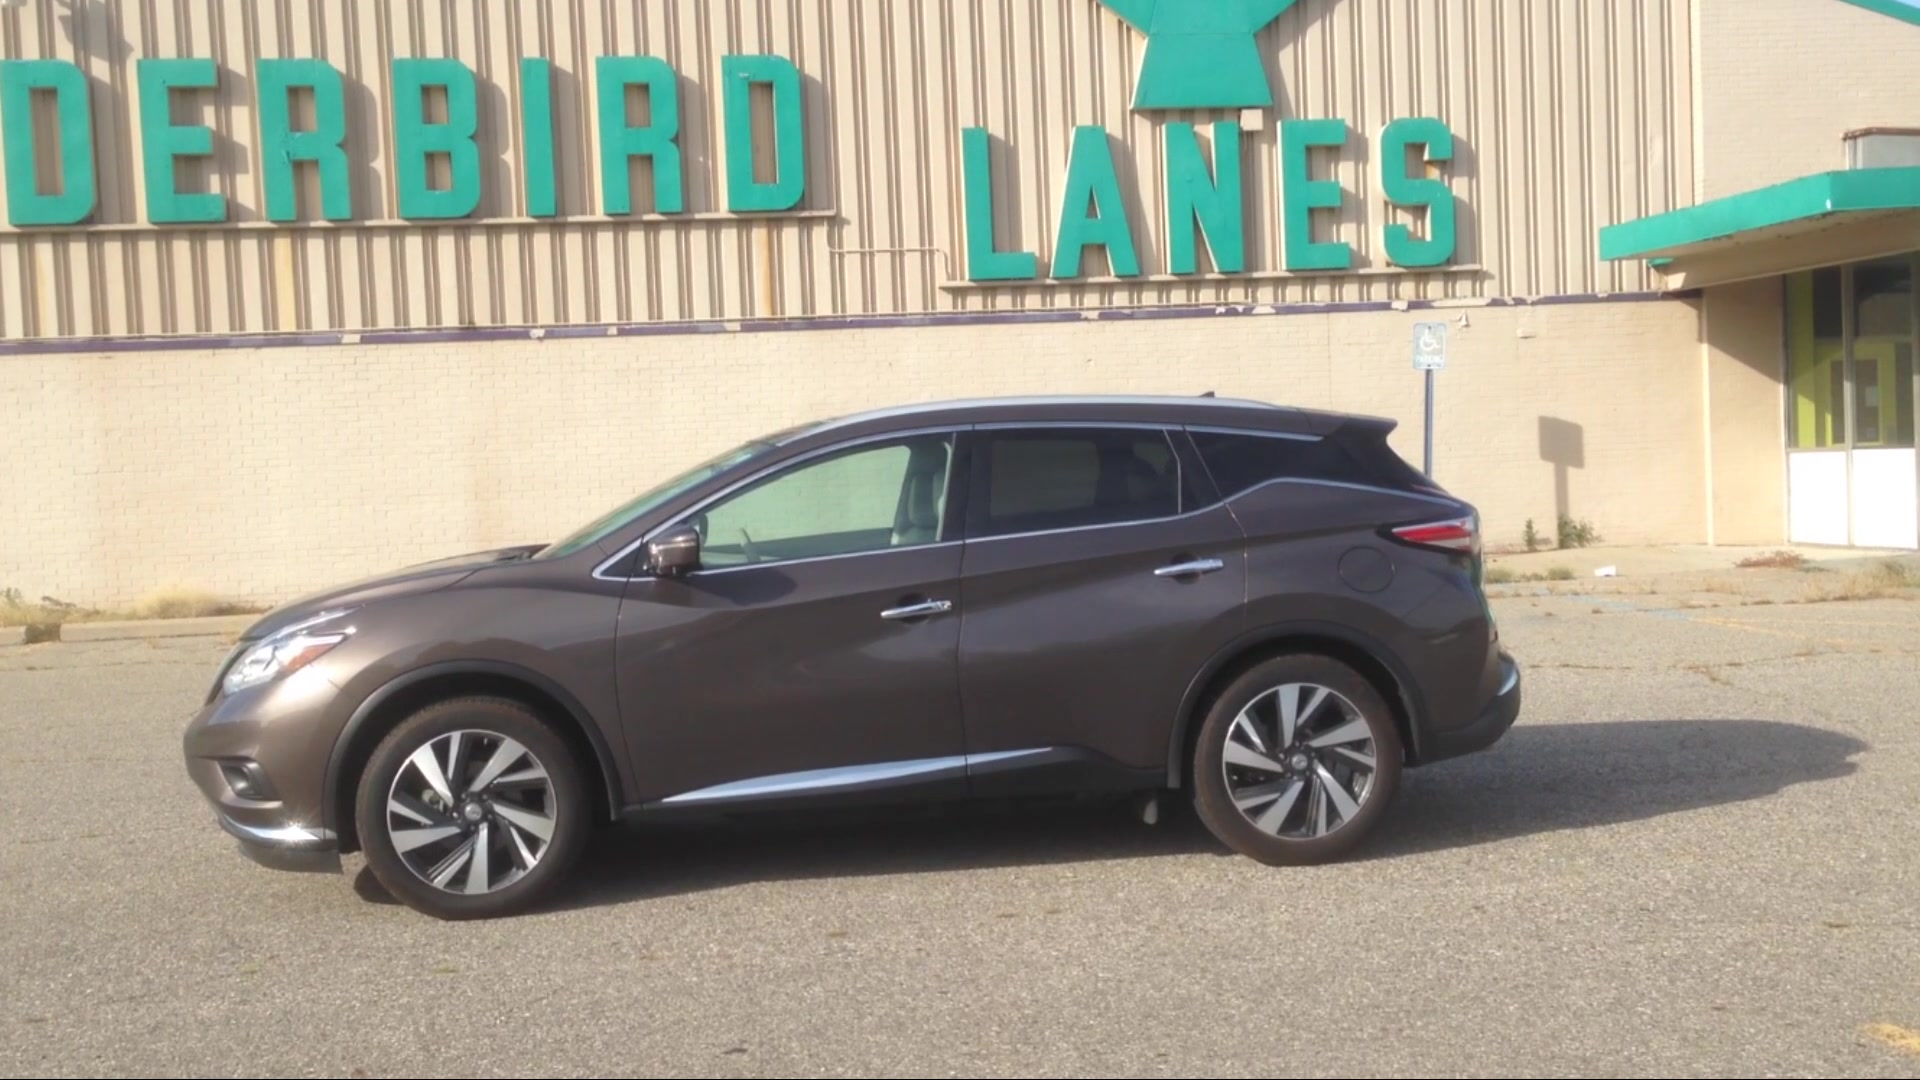 2015 Nissan Murano | Daily Driver